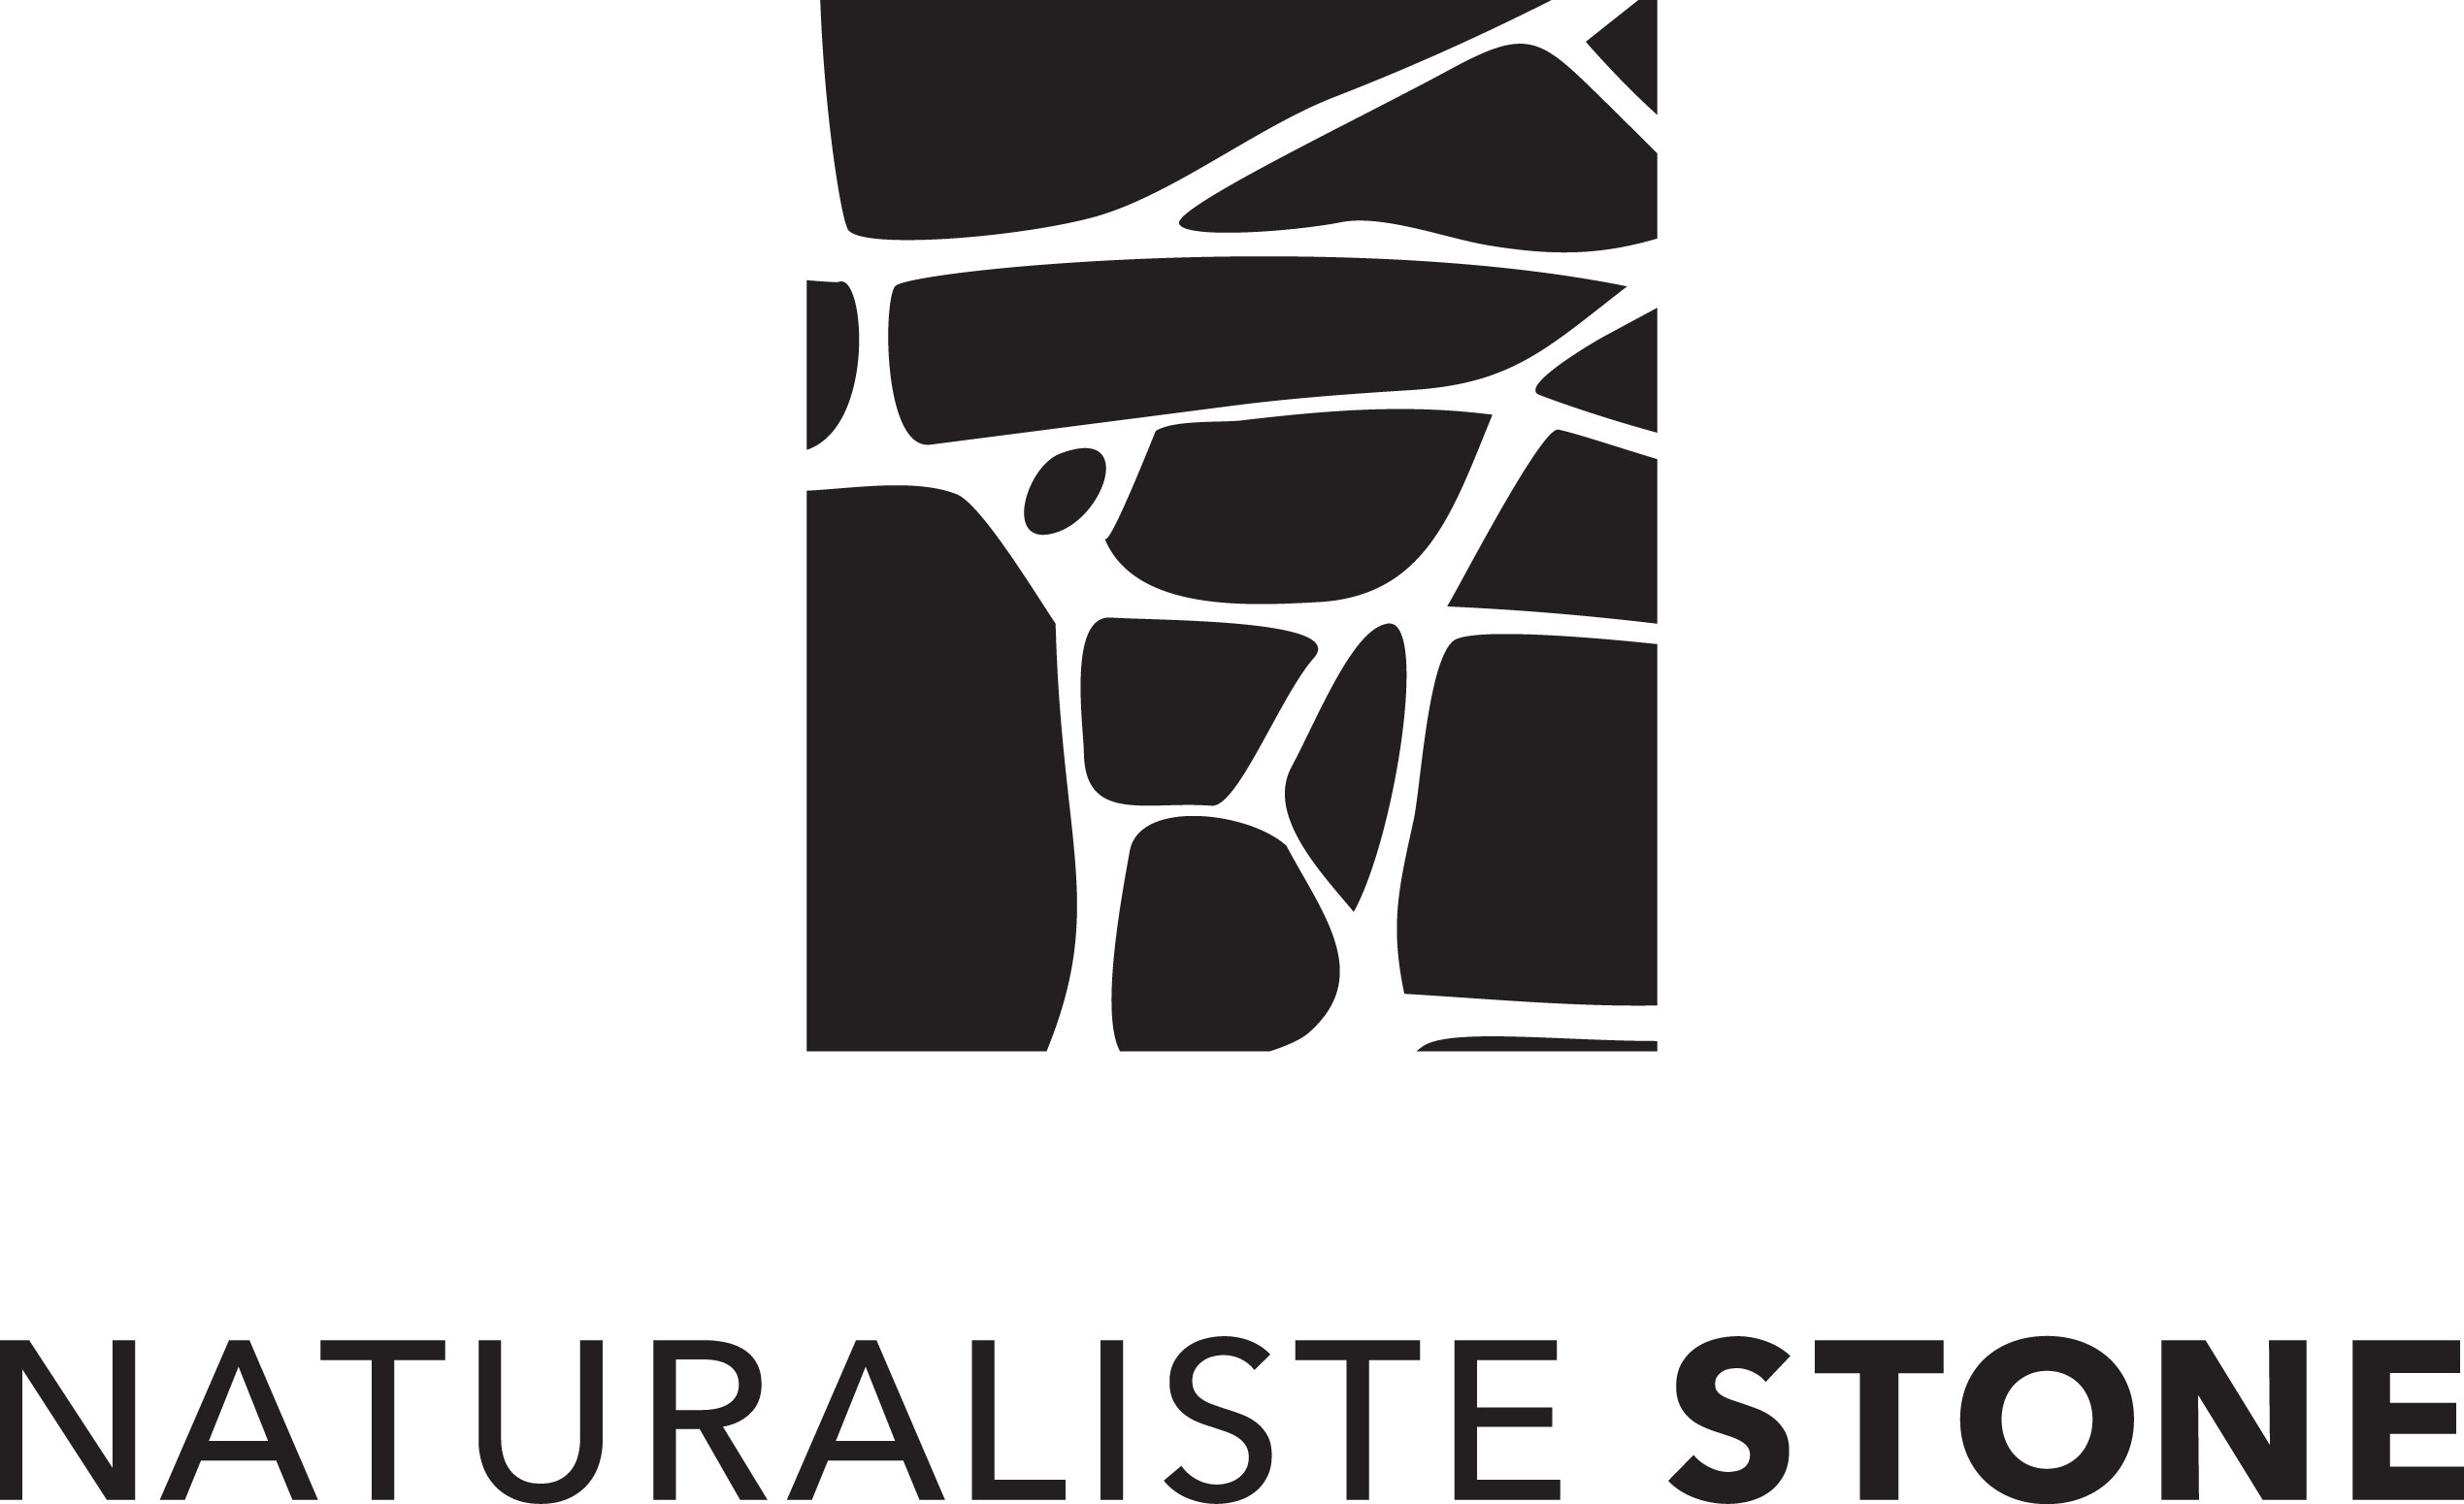 Welcome to Naturaliste Stone